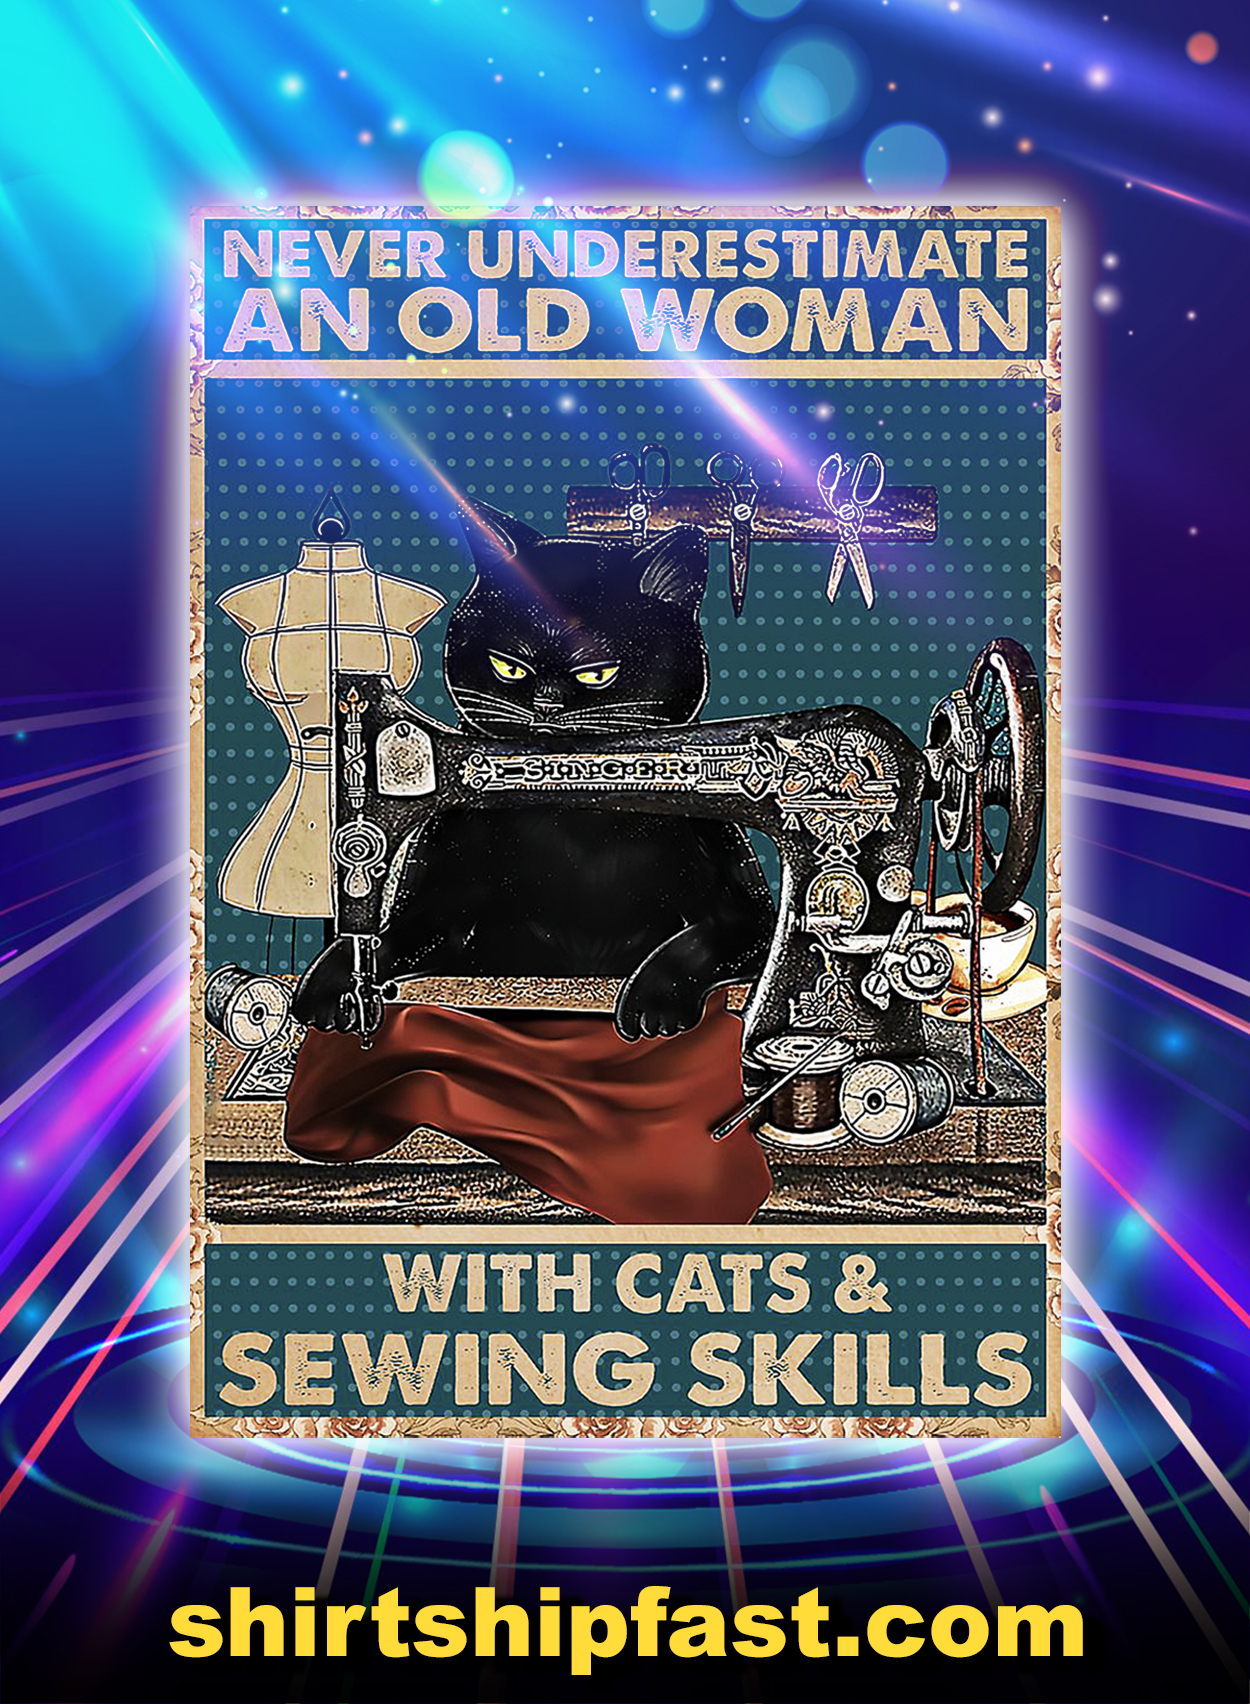 Never underestimate an old woman with cats and sewing skills poster - A2